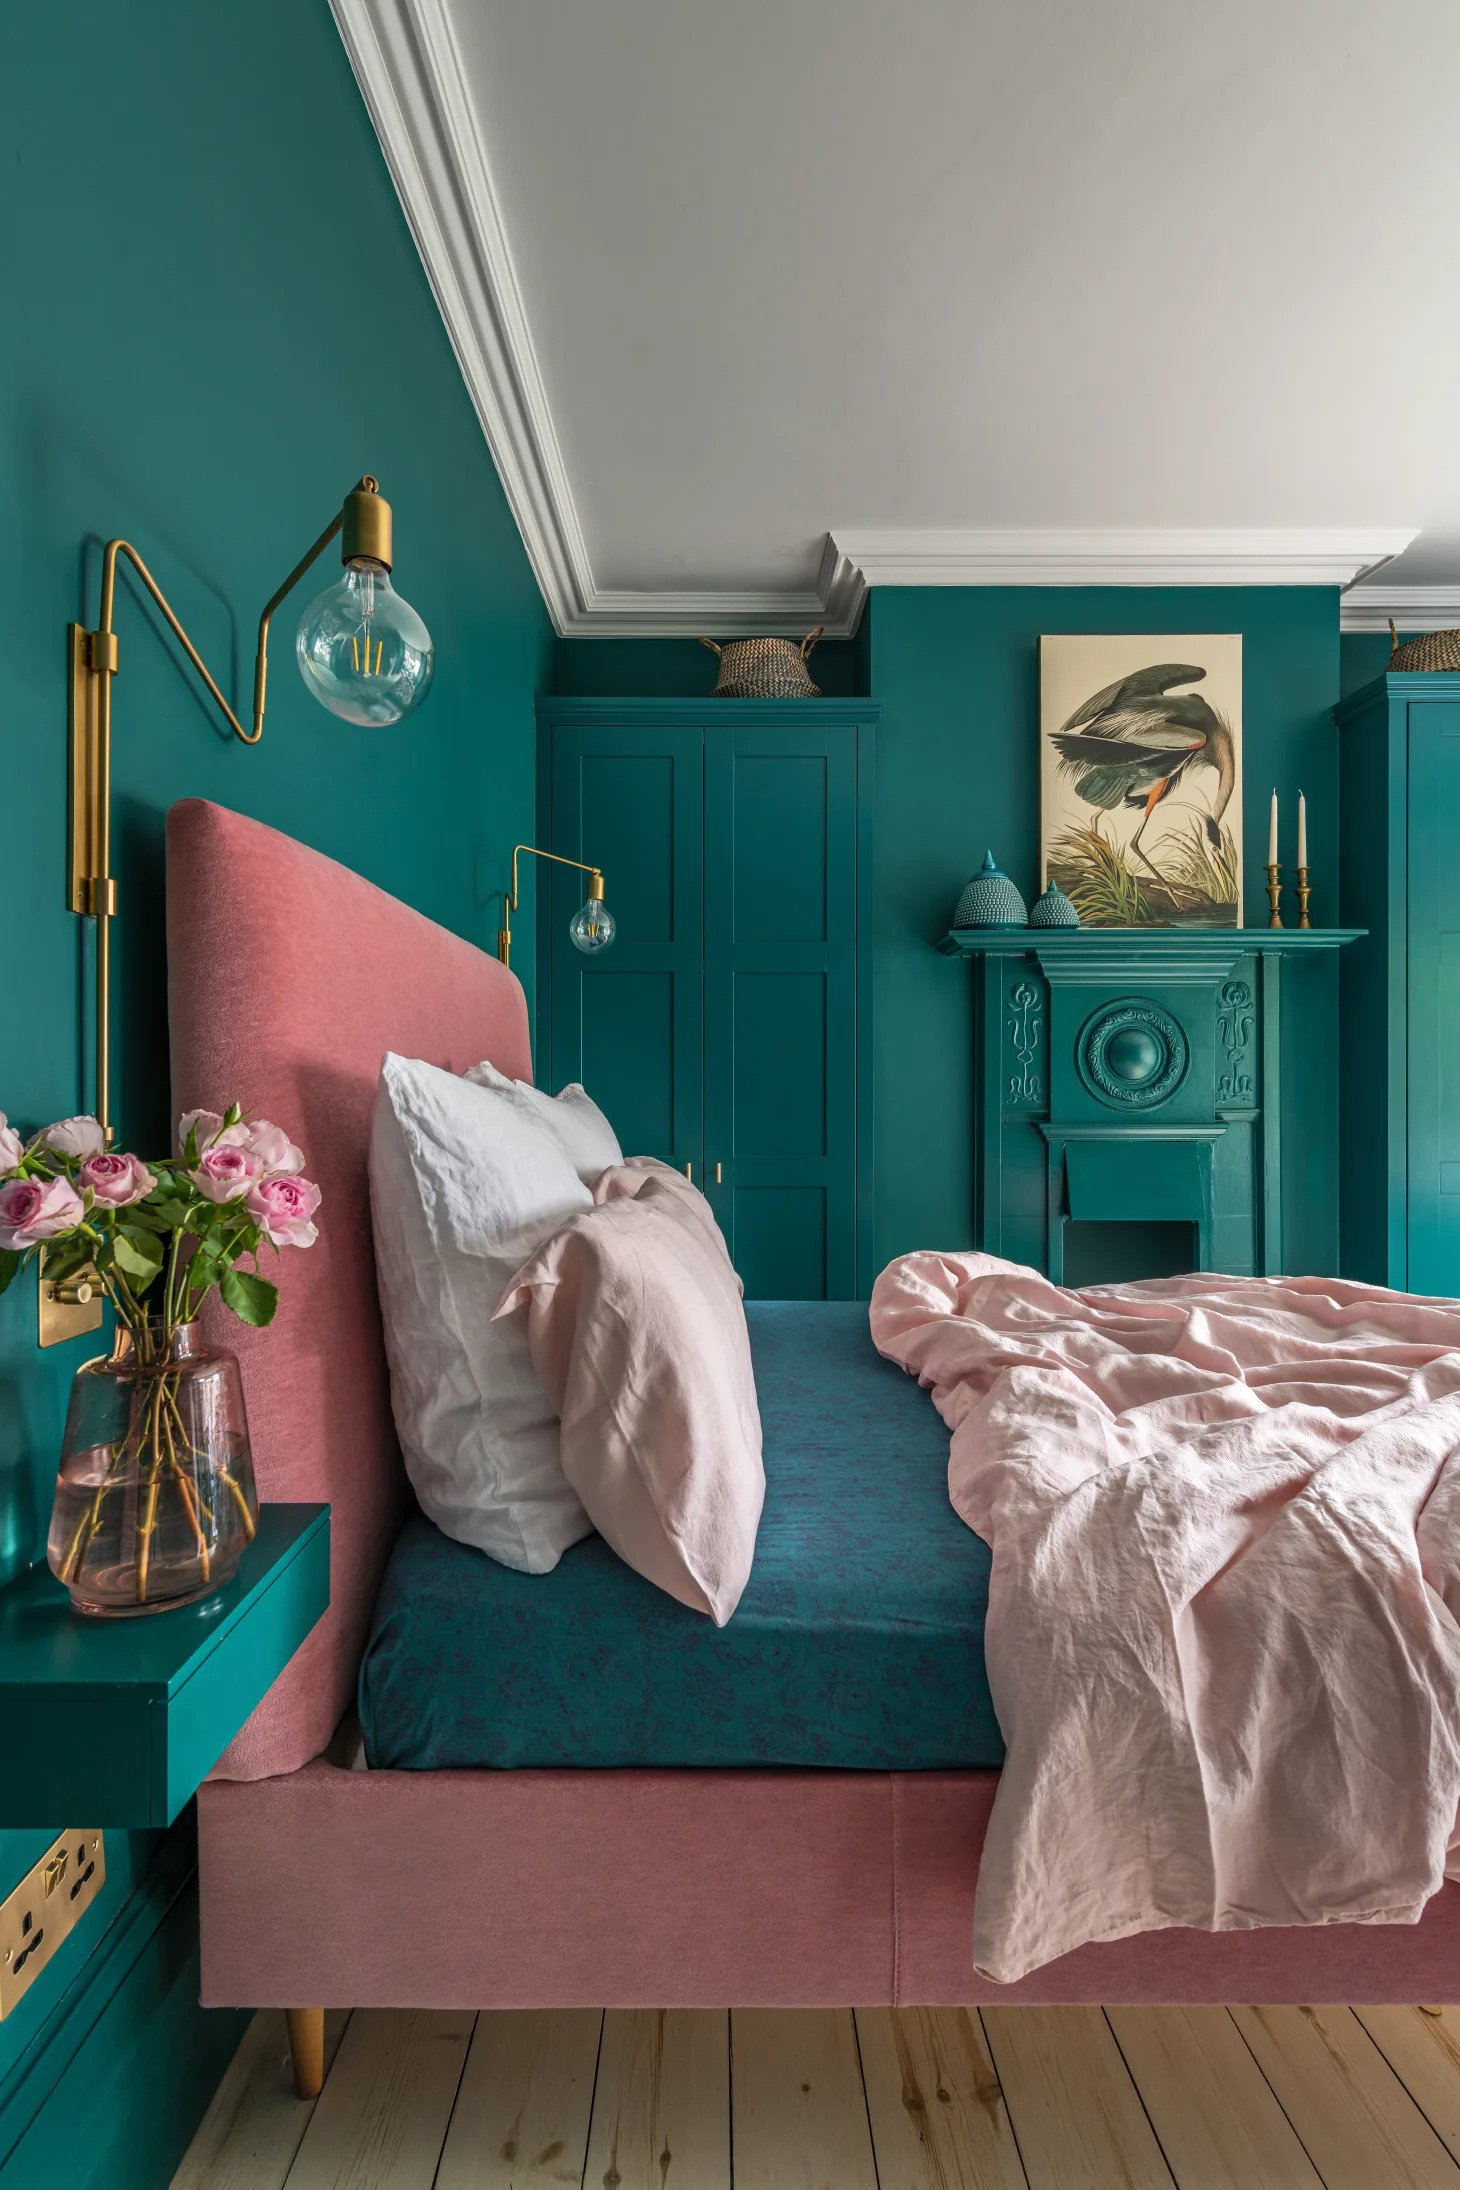 teal bedroom decor ideas for any